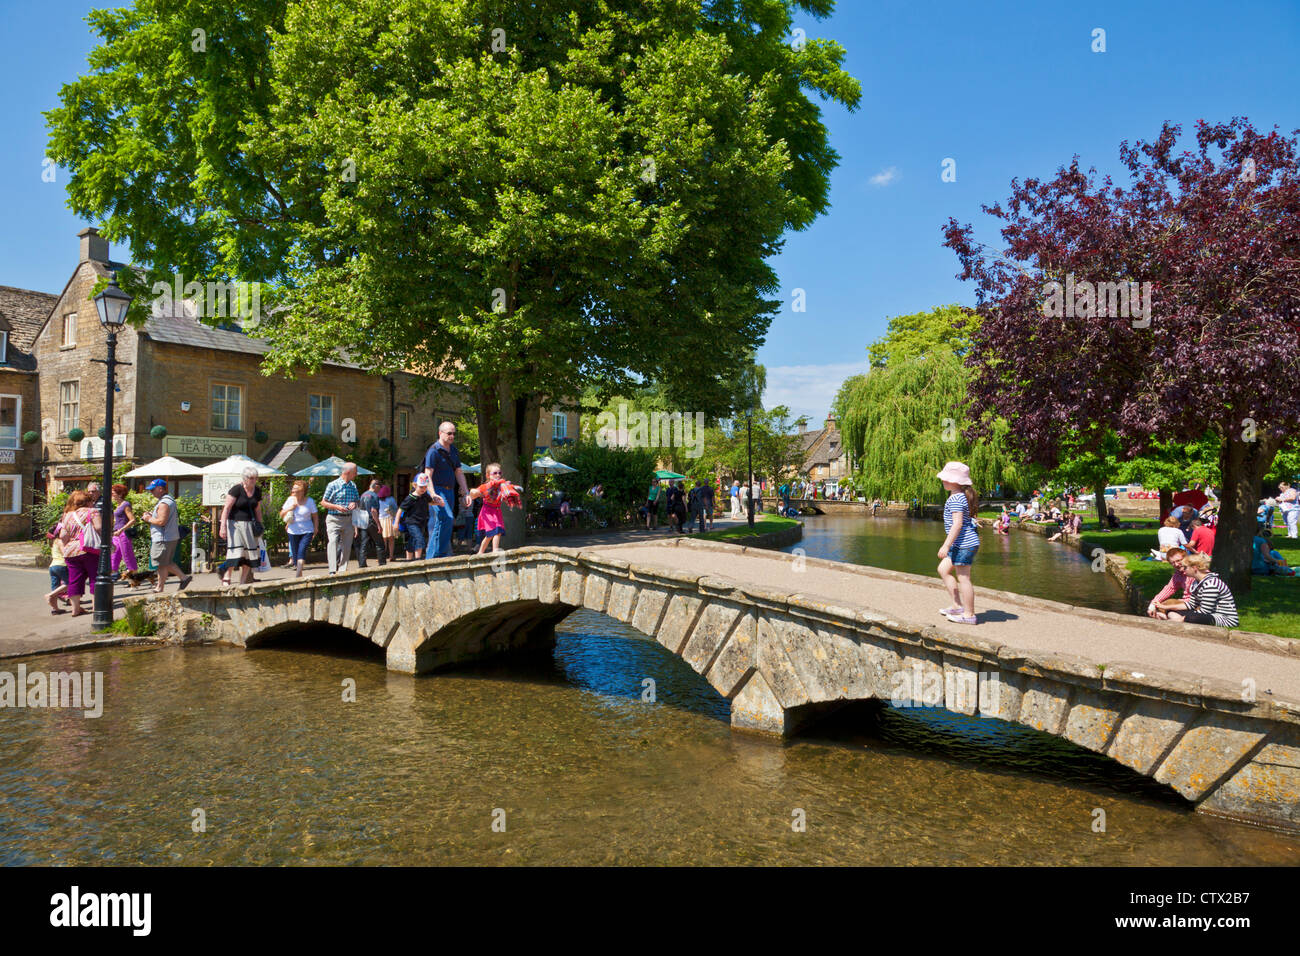 Bridge over the River Windrush in Bourton on the Water Cotswolds Gloucestershire England UK GB EU Europe - Stock Image